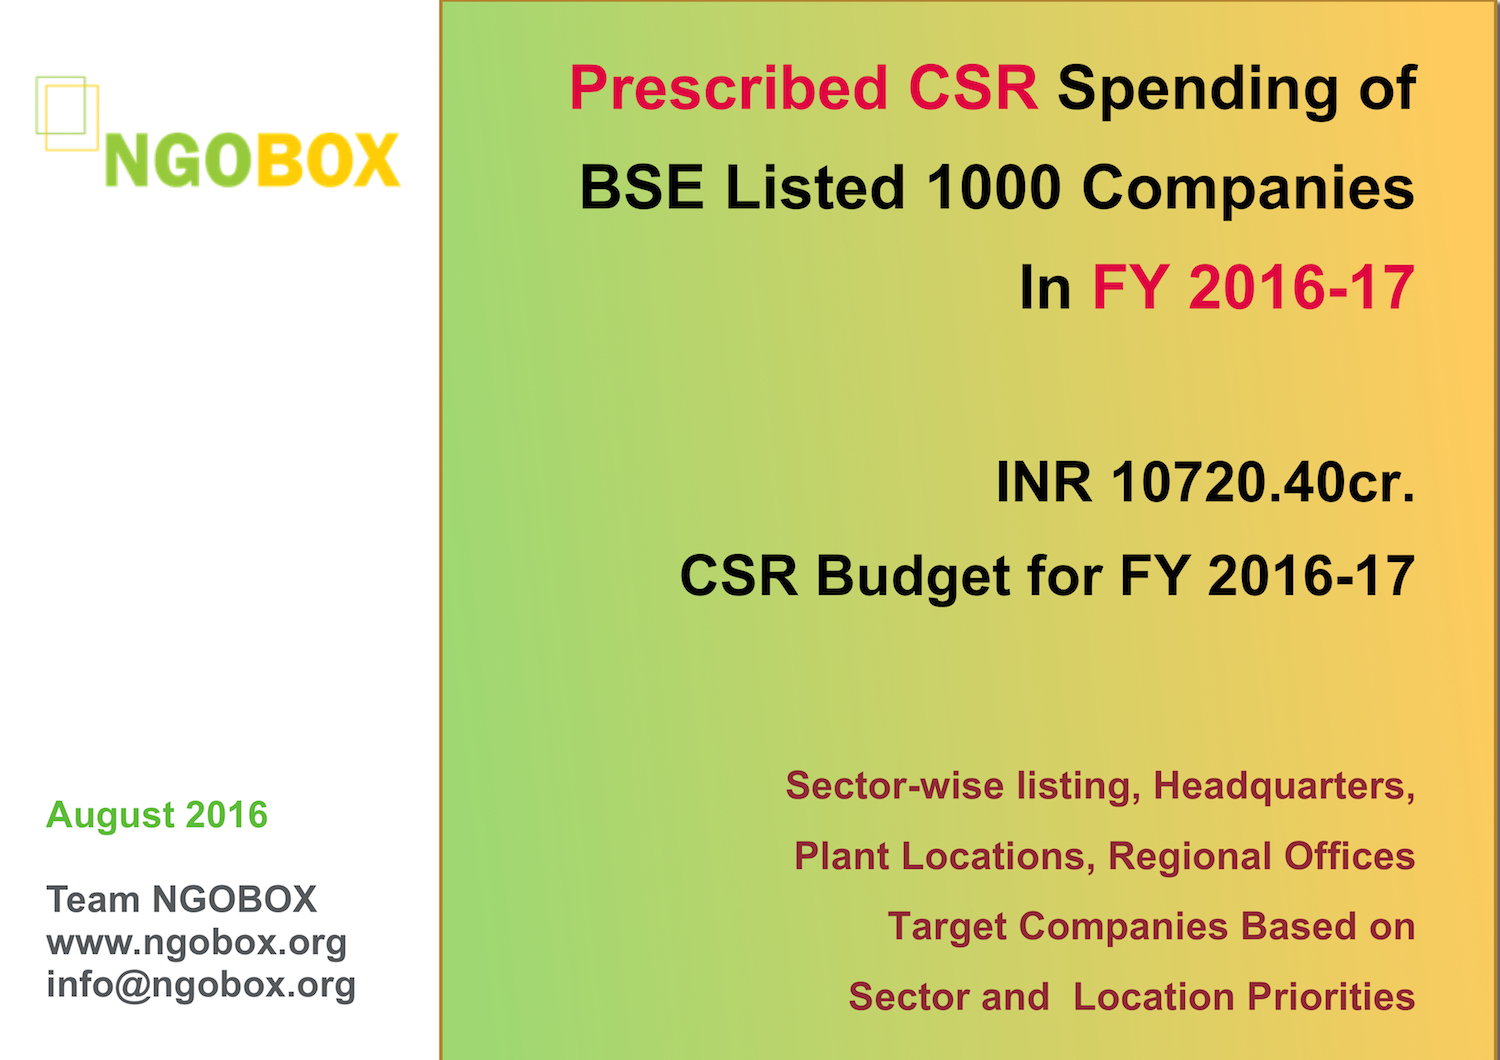 Prescribed CSR Spending Budget of Big 1000 Companies in FY 2016-17